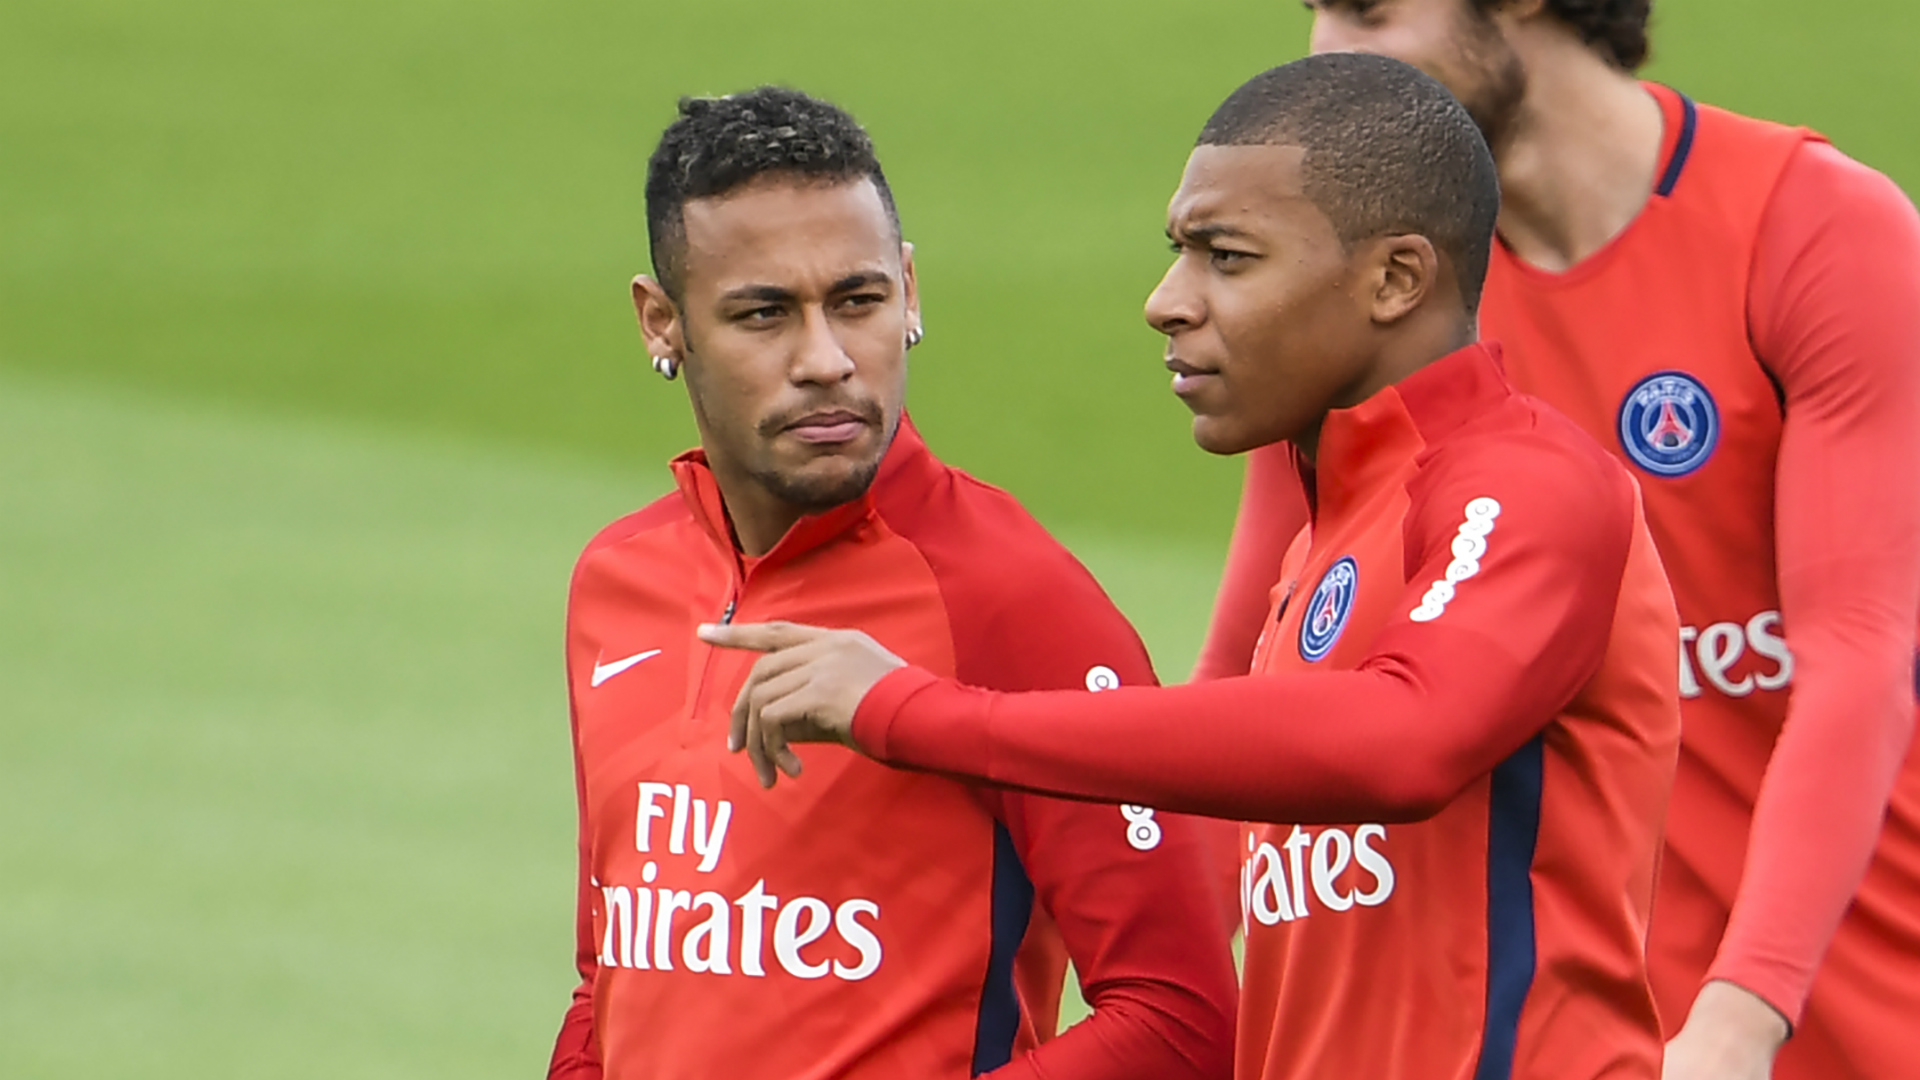 Kylian Mbappe Neymar Paris Saint-Germain